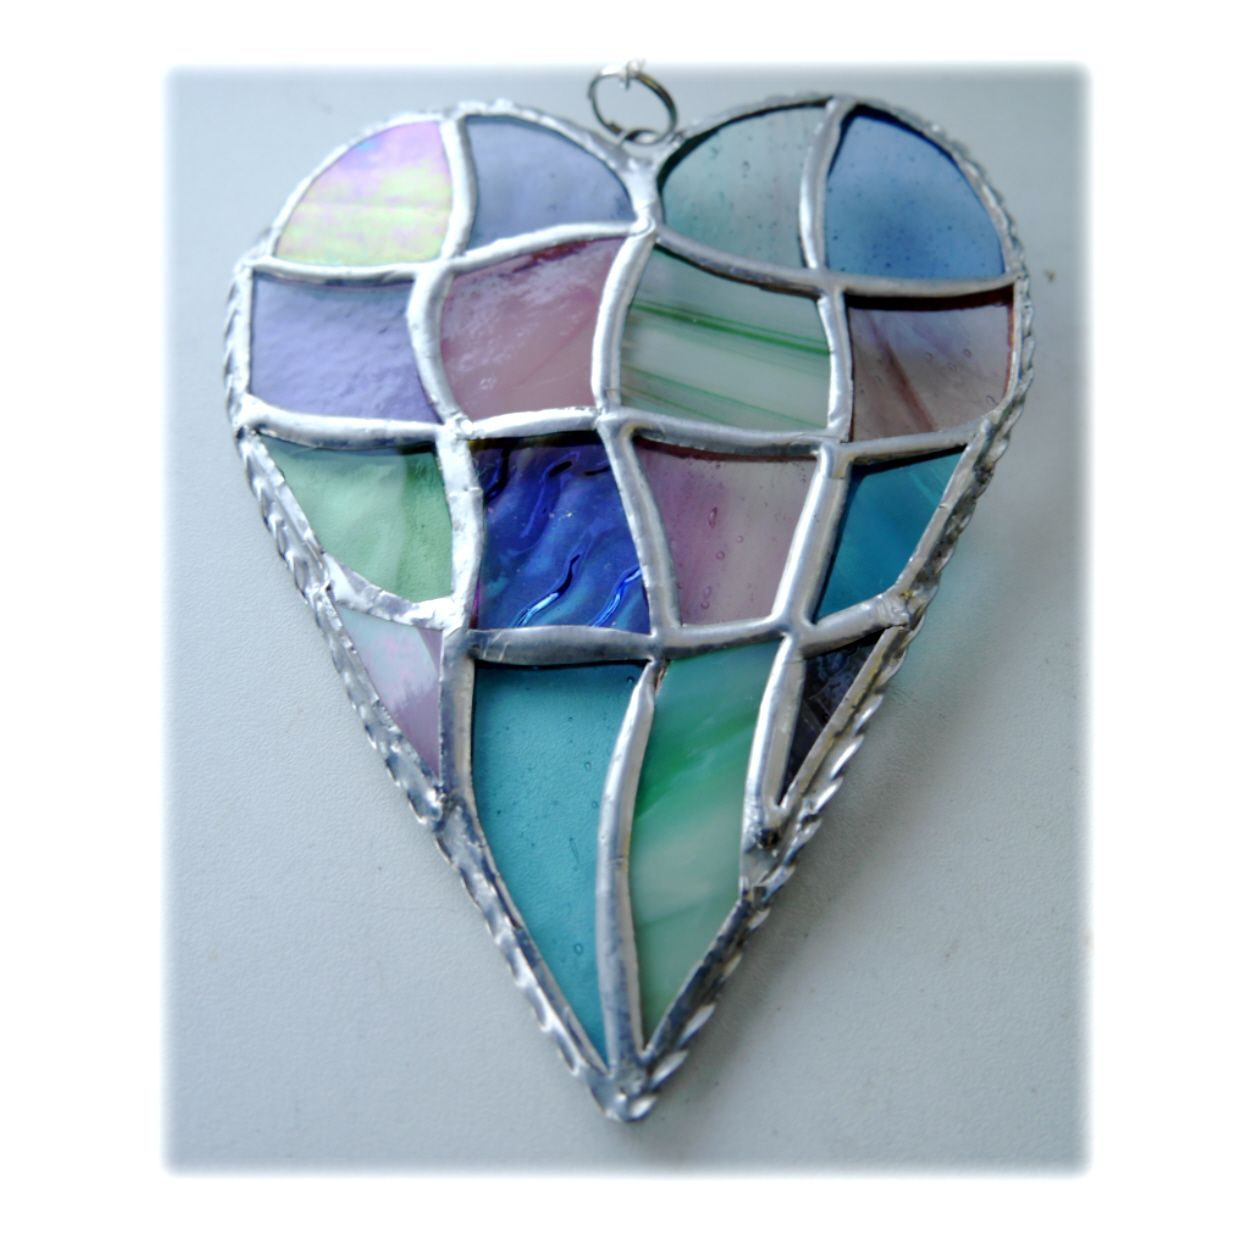 Patchwork Heart 041 Pastel #1905 FREE 16.00